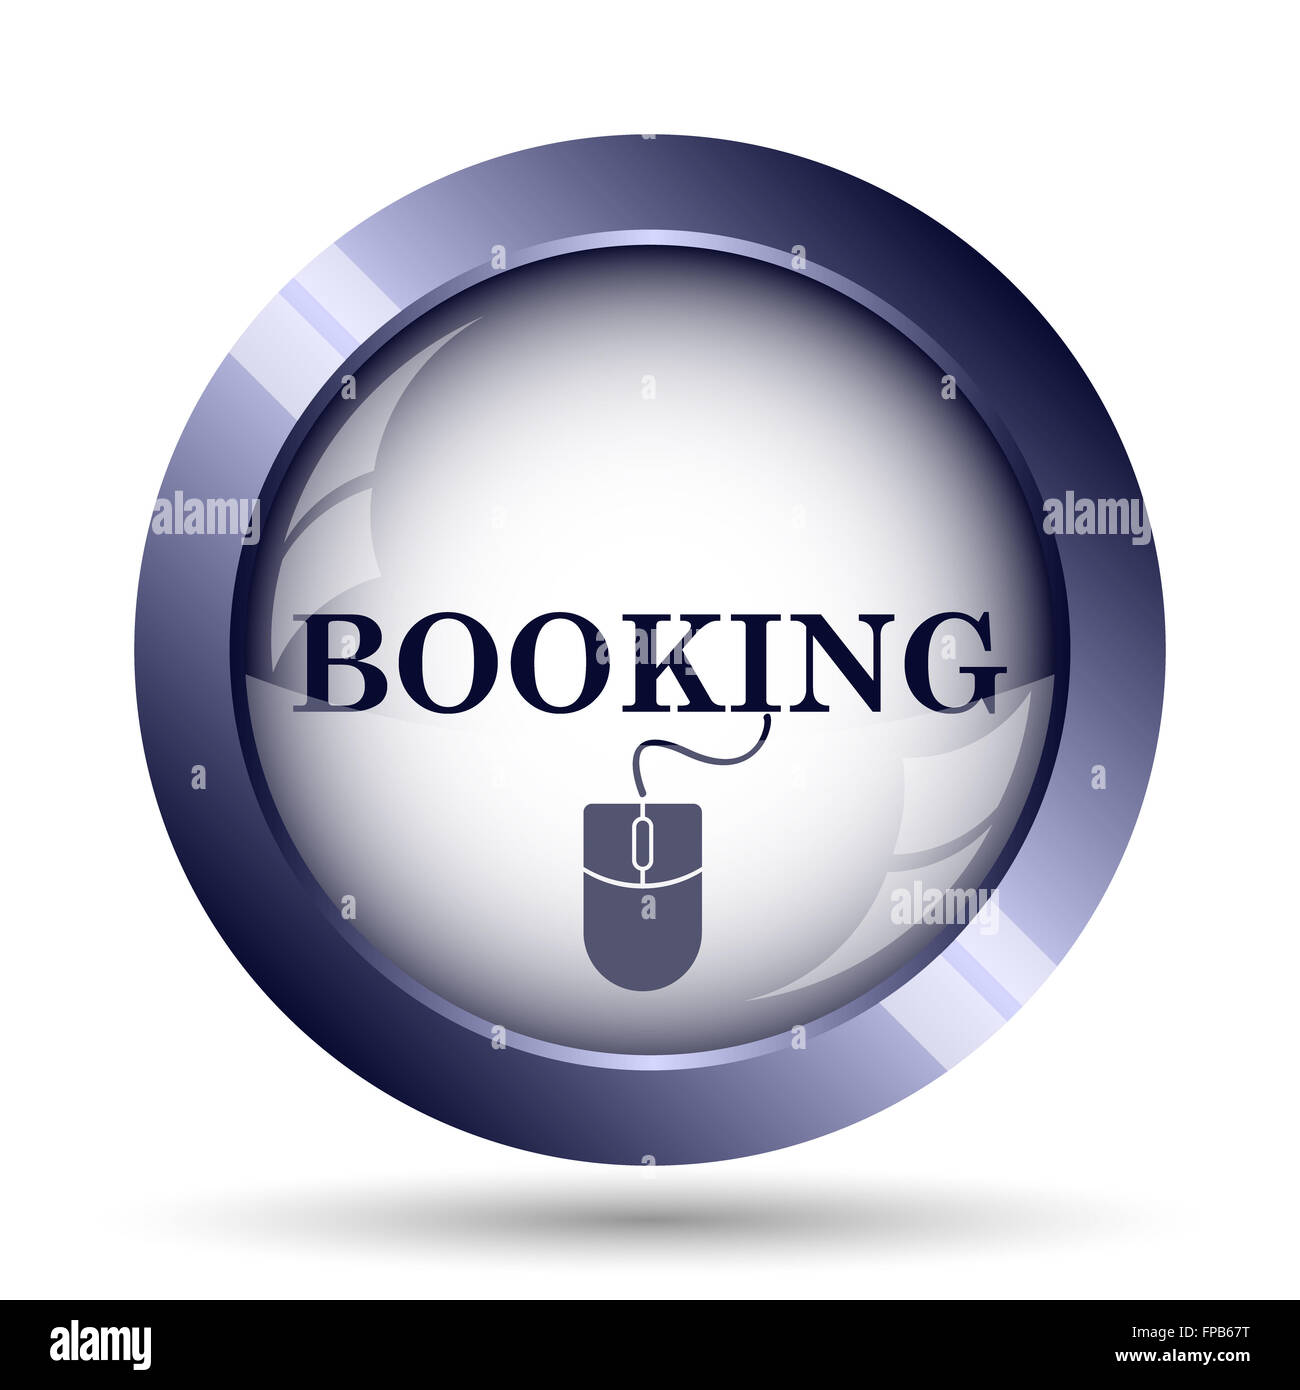 Booking icon. Internet button on white background. - Stock Image